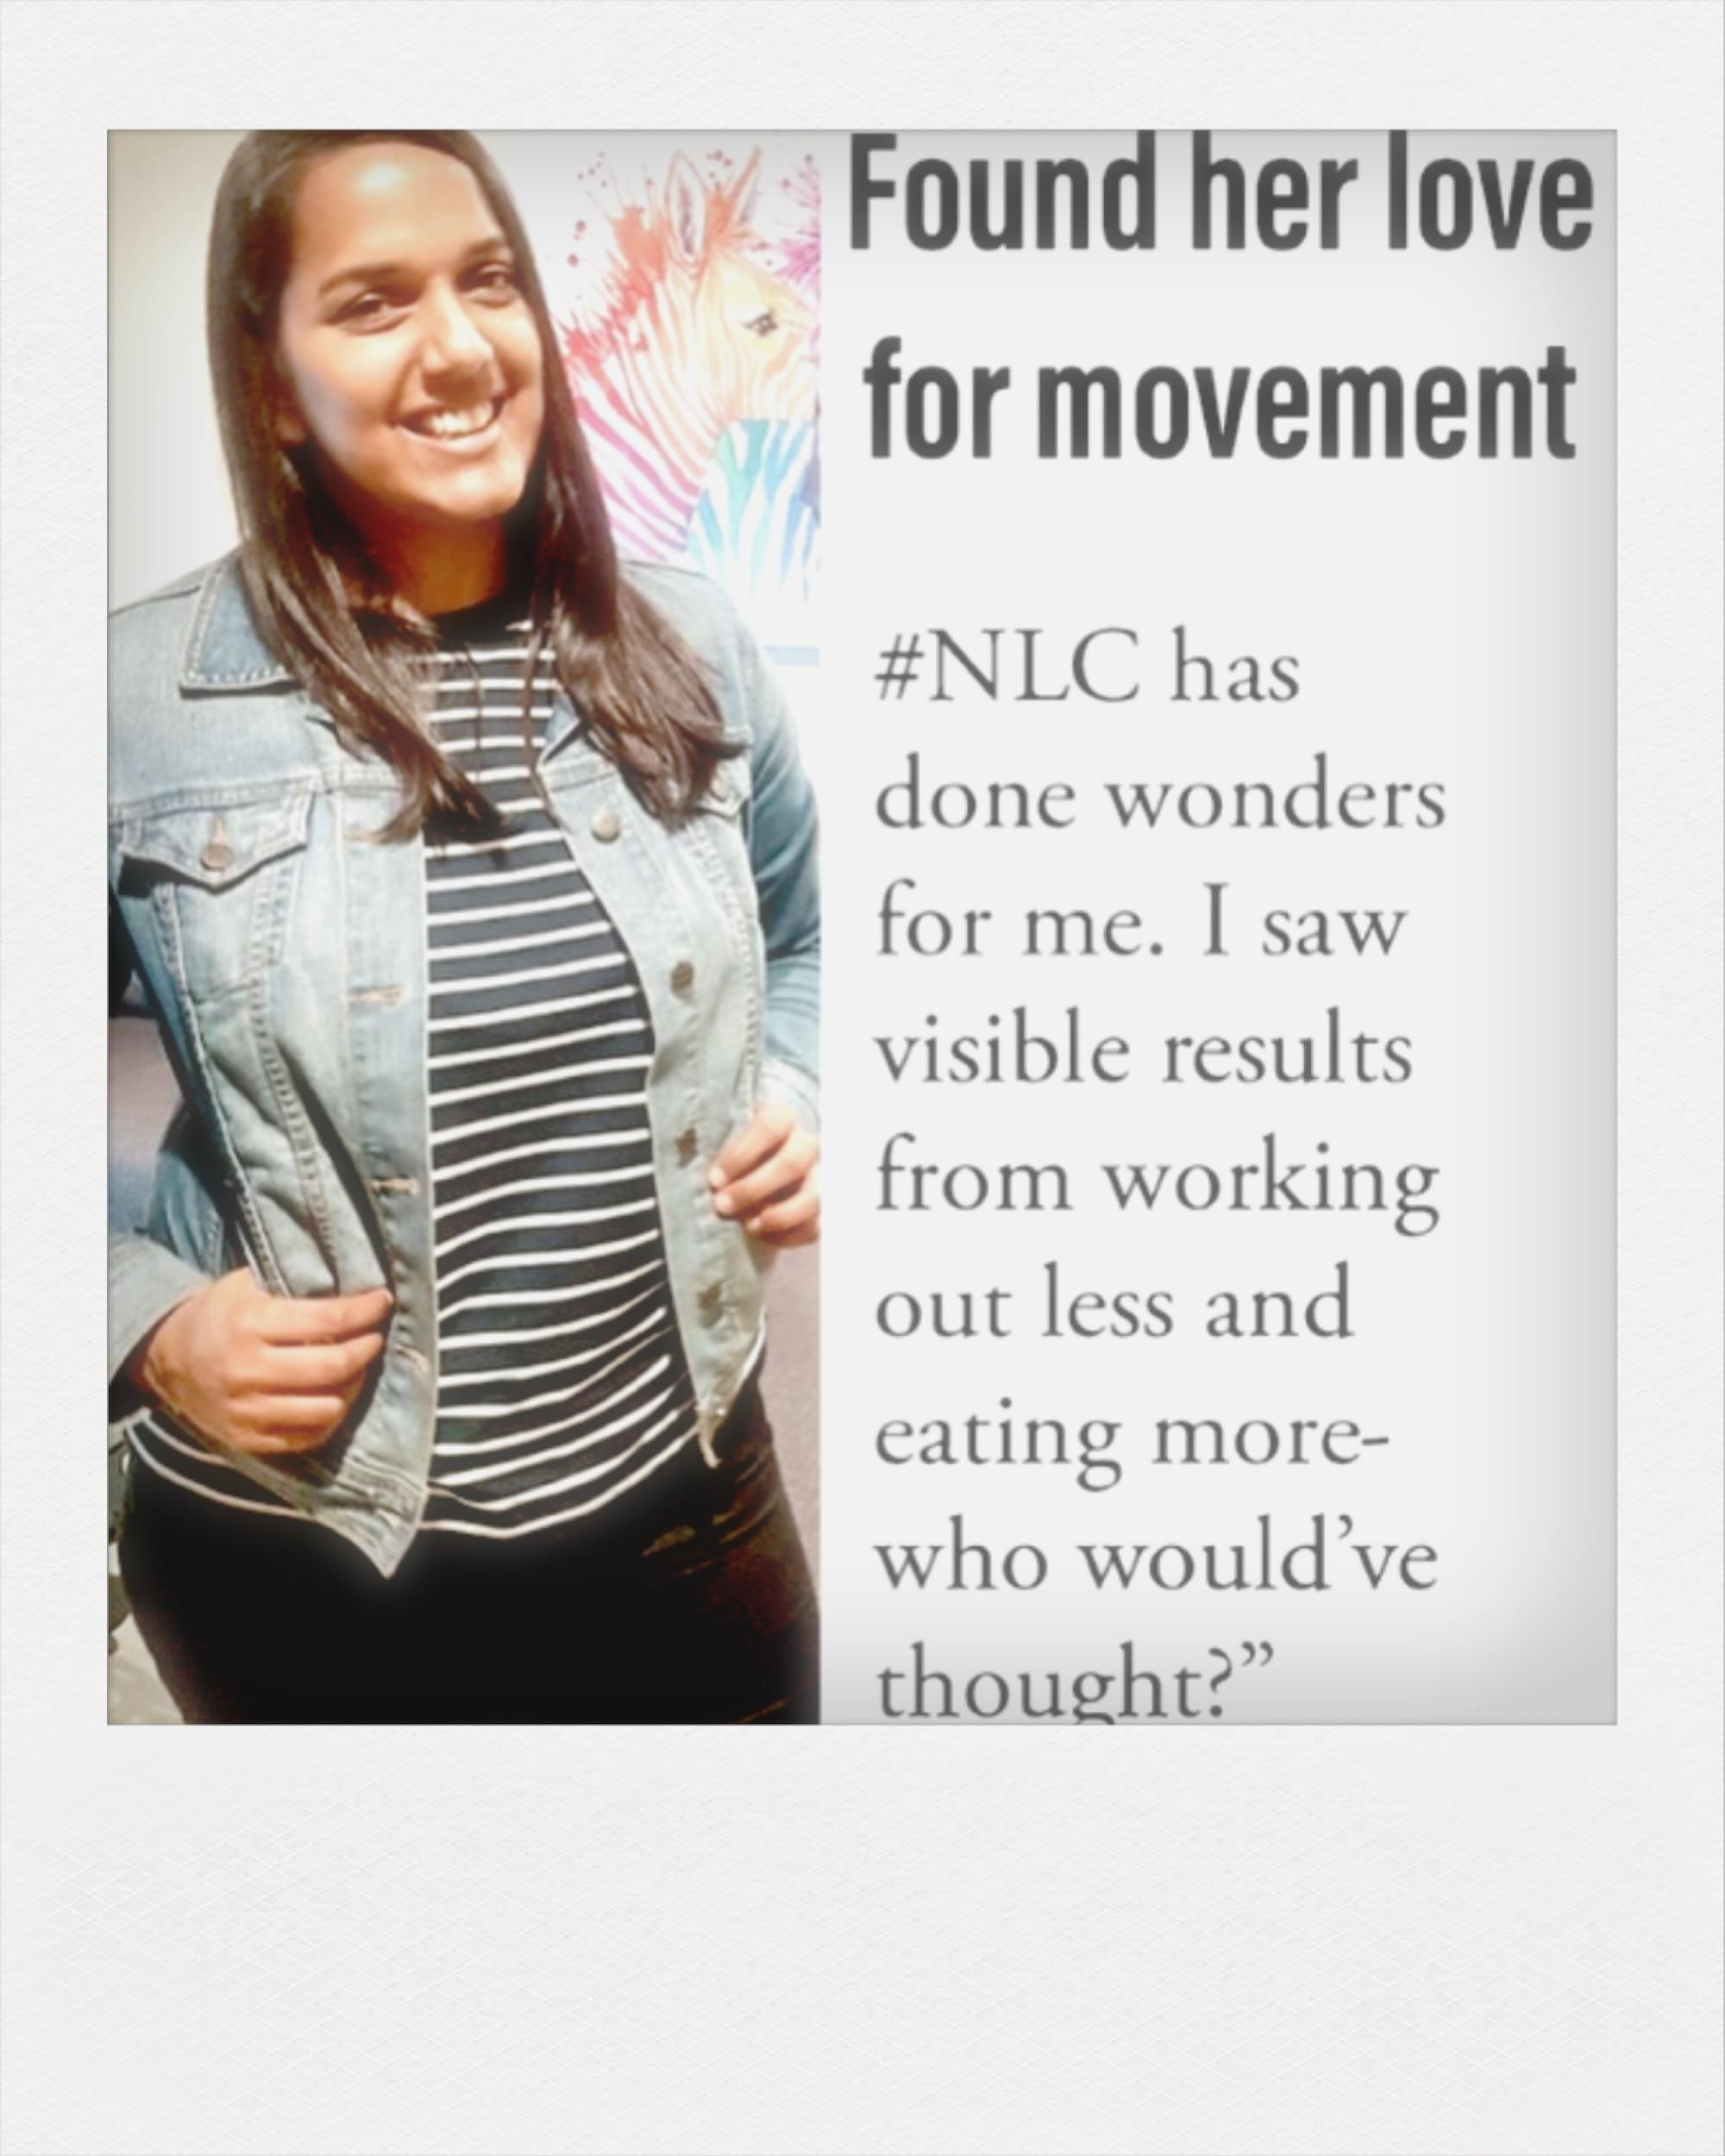 Nats Levi, NLC, NLC move me, group fitness, movement, nourishment, restoration